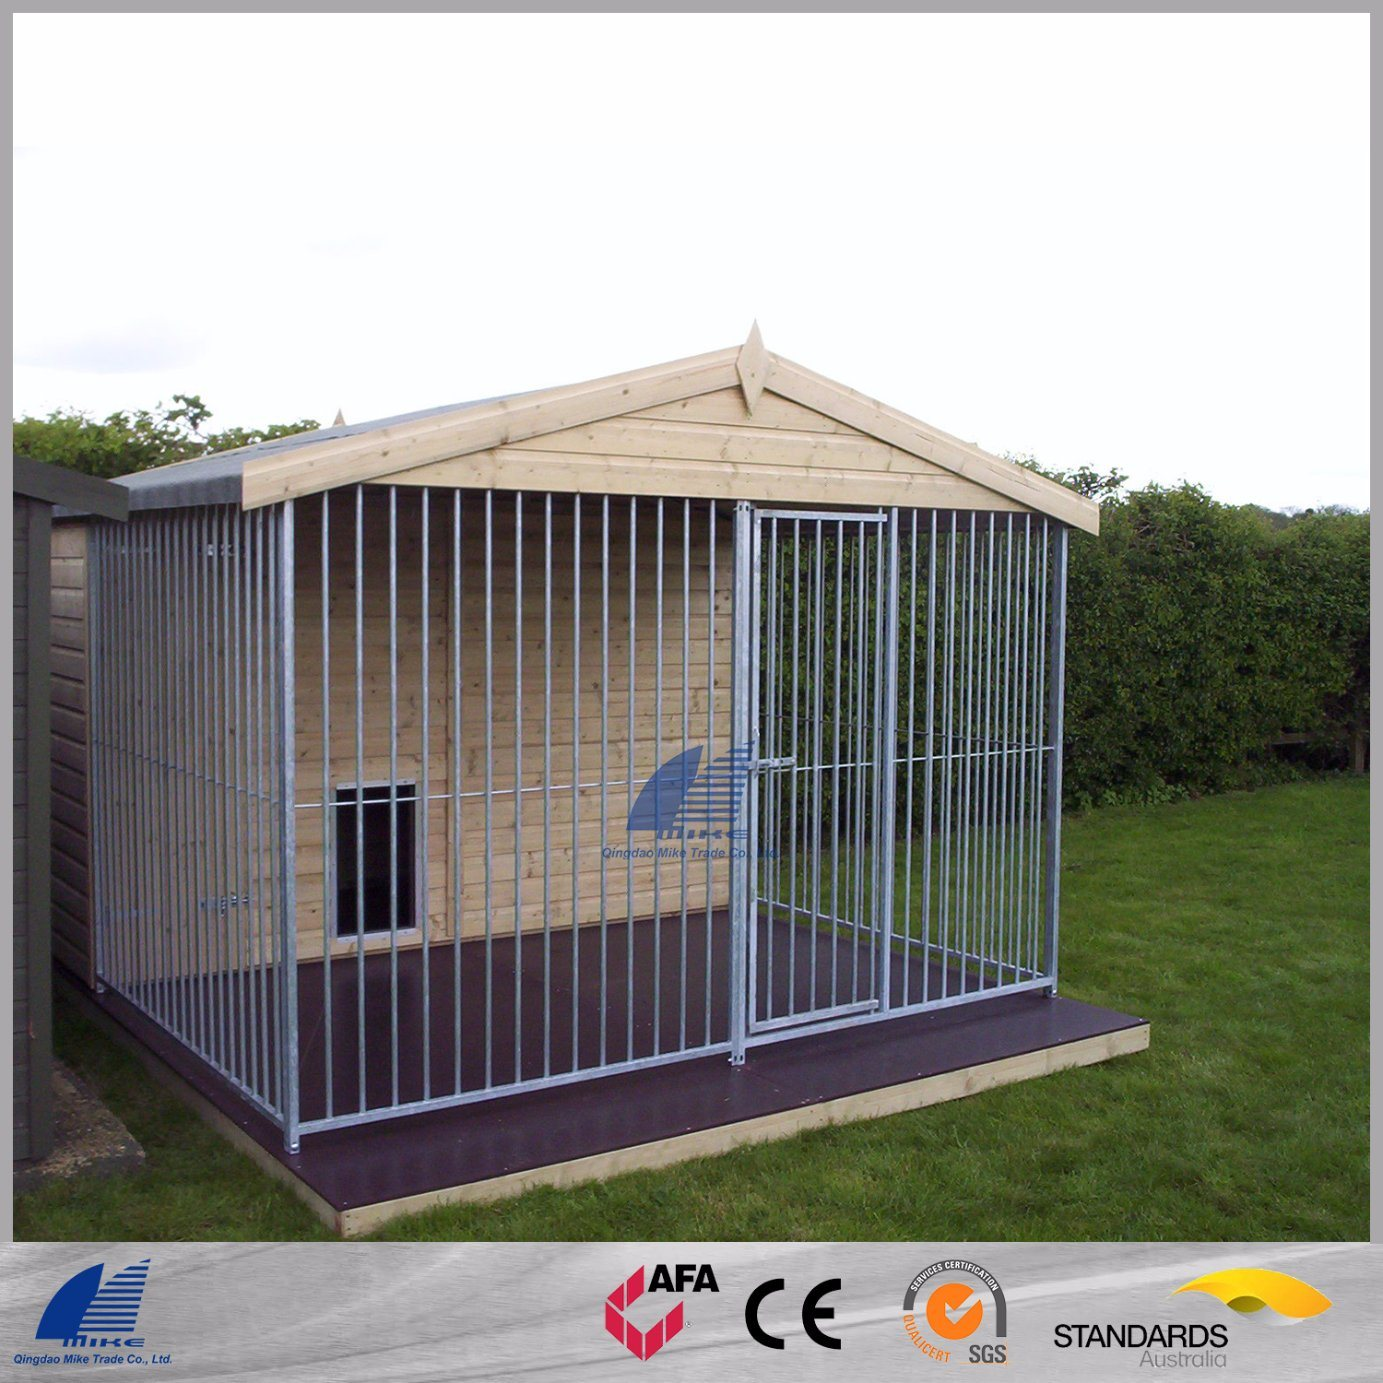 China Heavy Duty Pet Playpen Dog Exercise Pen Expandable Dog Kennel China Dog Kennel And Dog Run Price